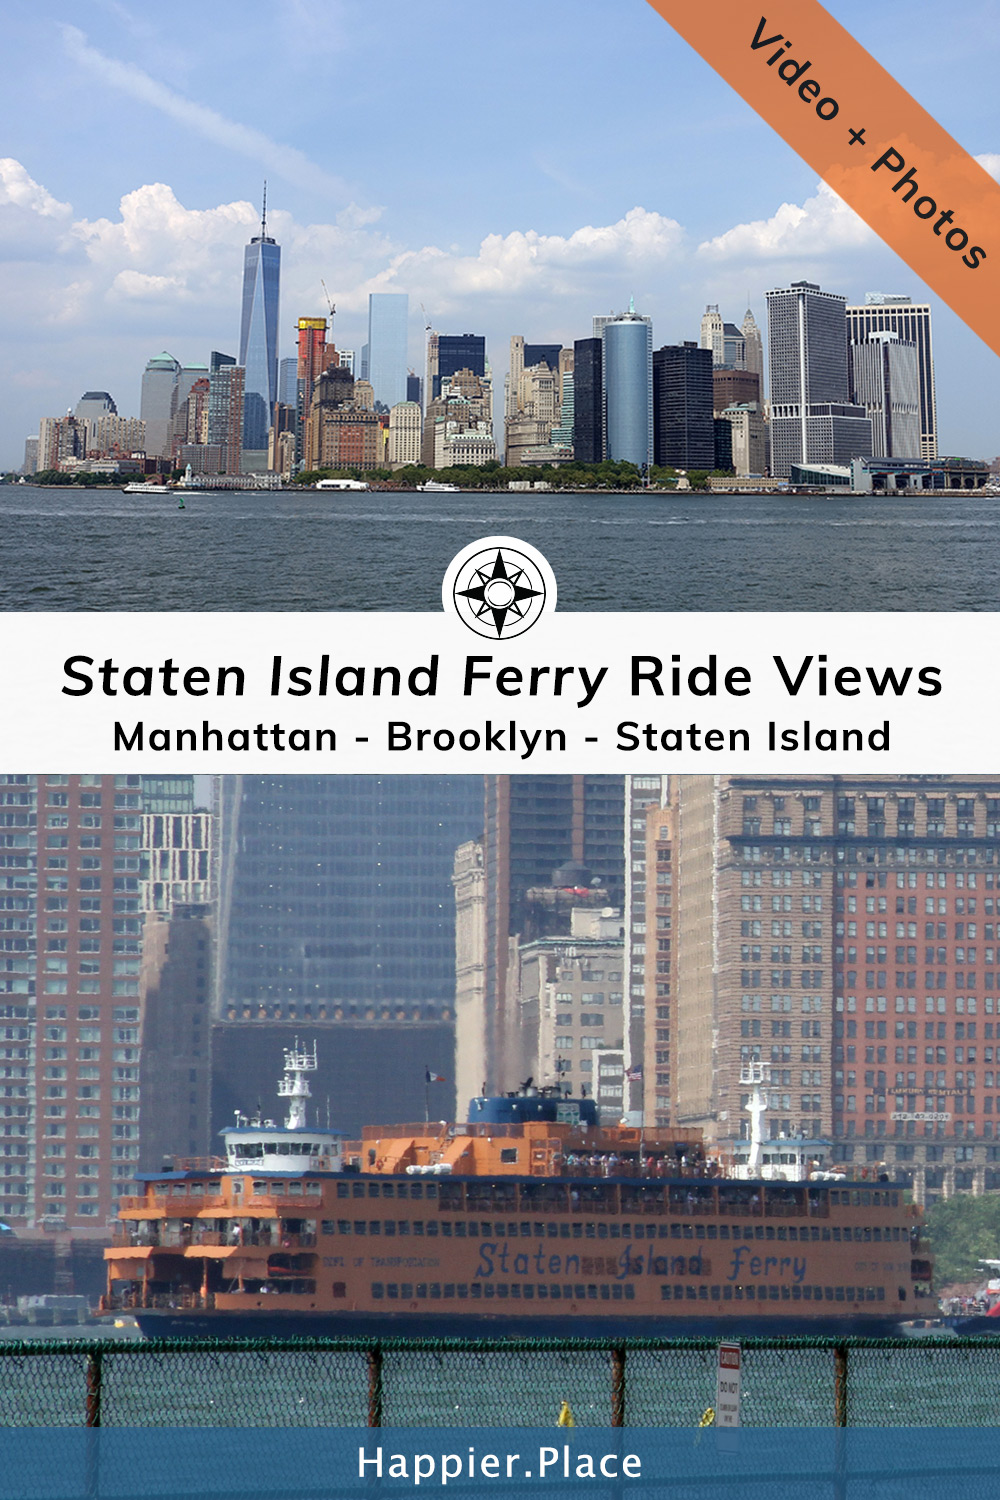 Staten Island Ferry Views Manhattan skyline video